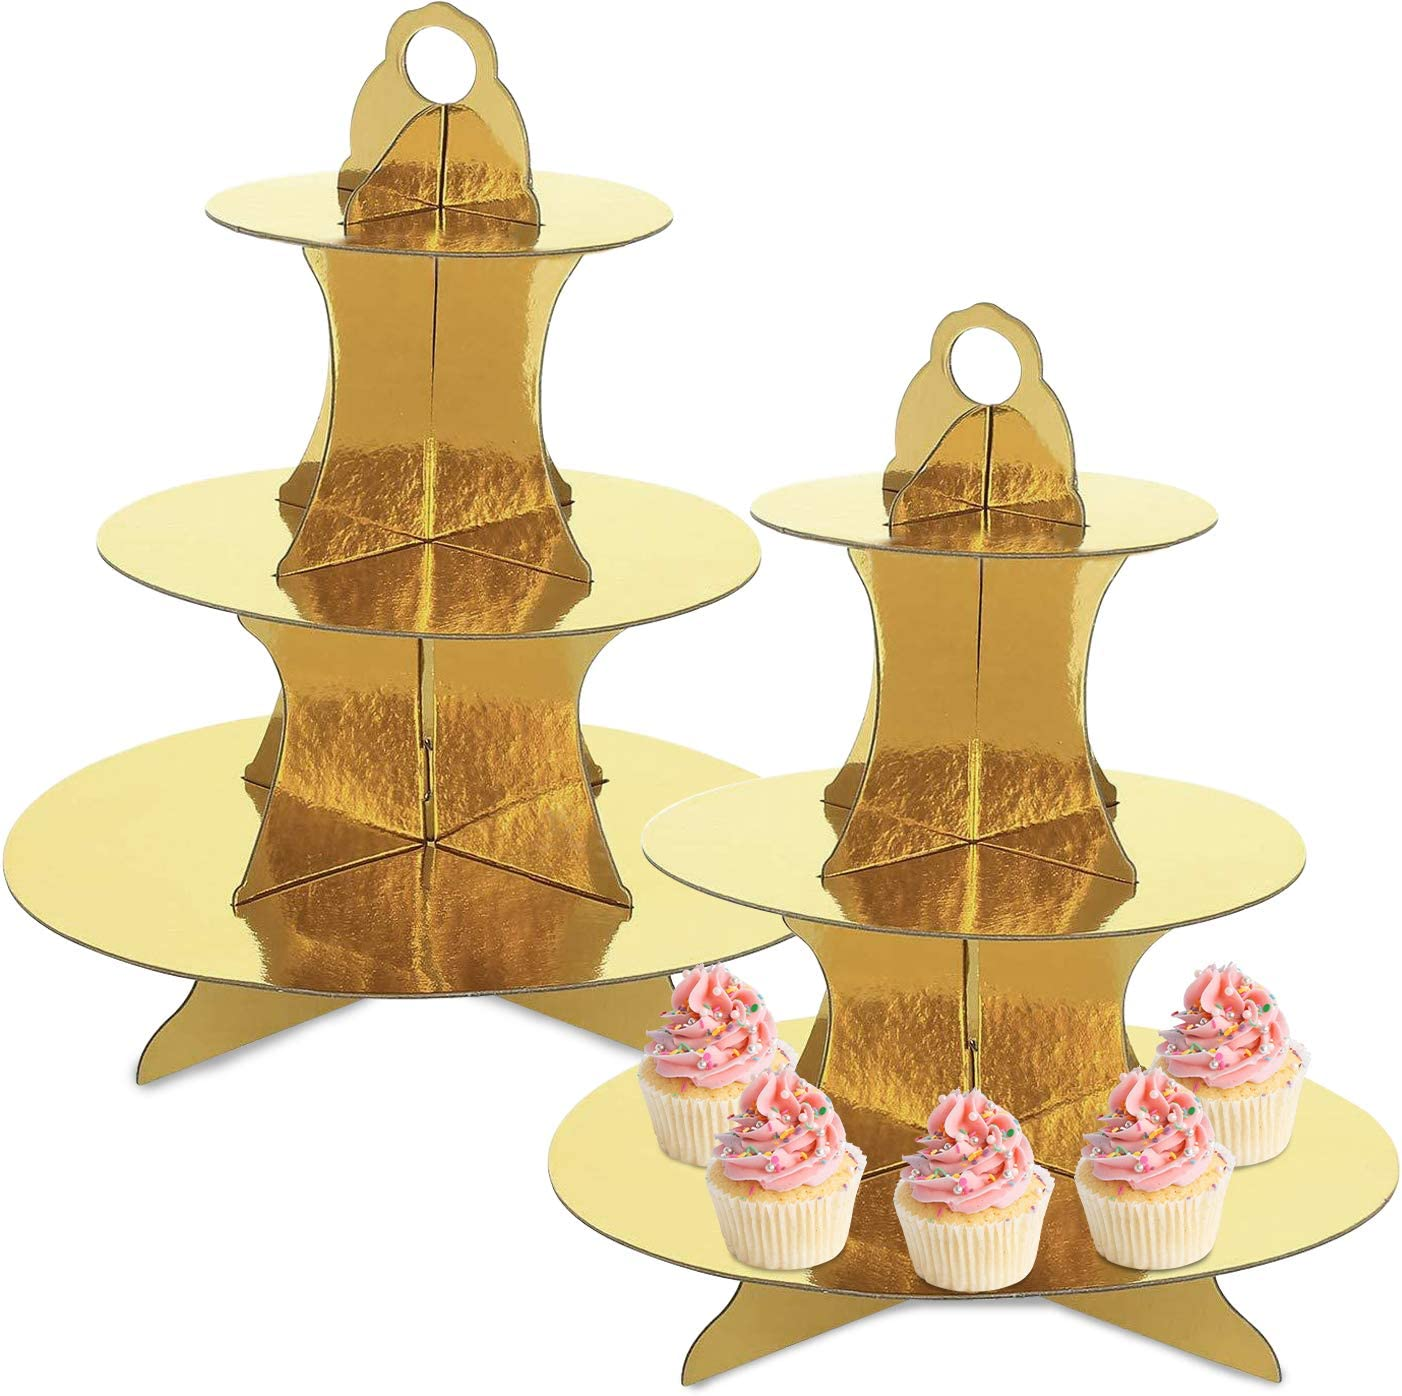 2 Pack 3-Tier Cardboard Cupcake Stand, Gold Round Dessert Cupcake Tower Pastries Food Display for Birthday, Wedding, Baby Shower